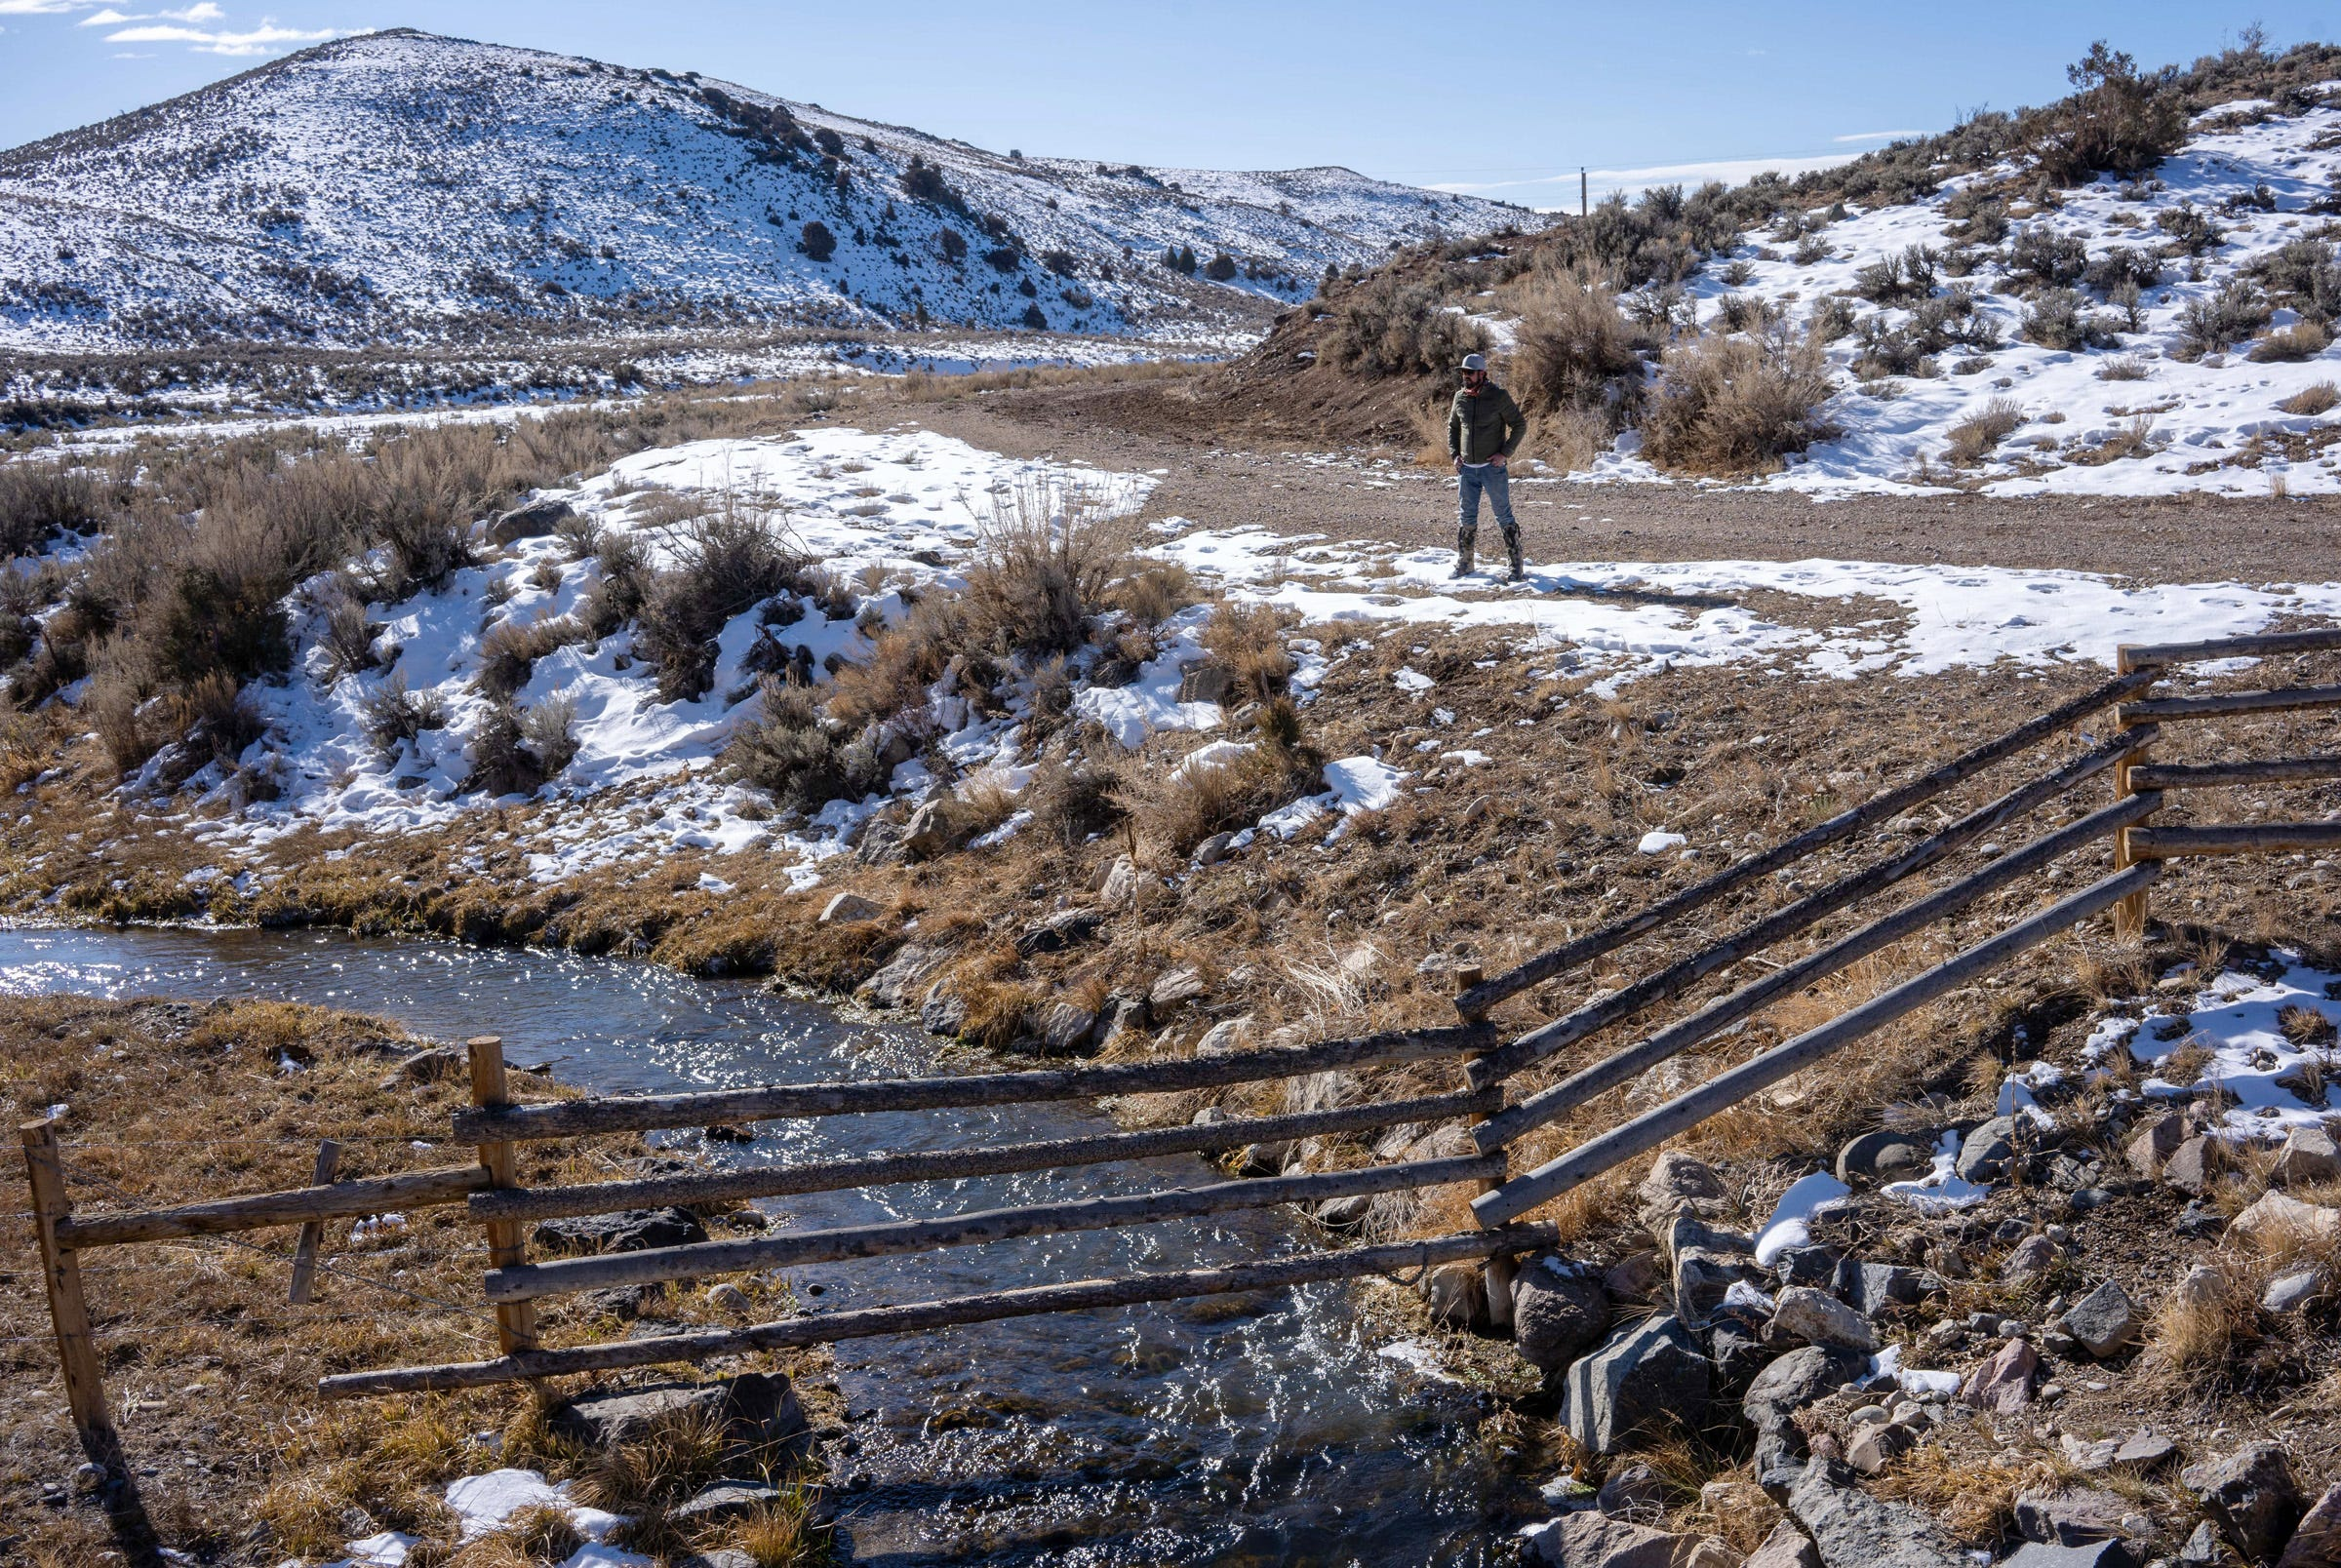 Rancher Paul Bruchez stands beside Reeder Creek, which flows into the Colorado River near Kremmling, Colorado.